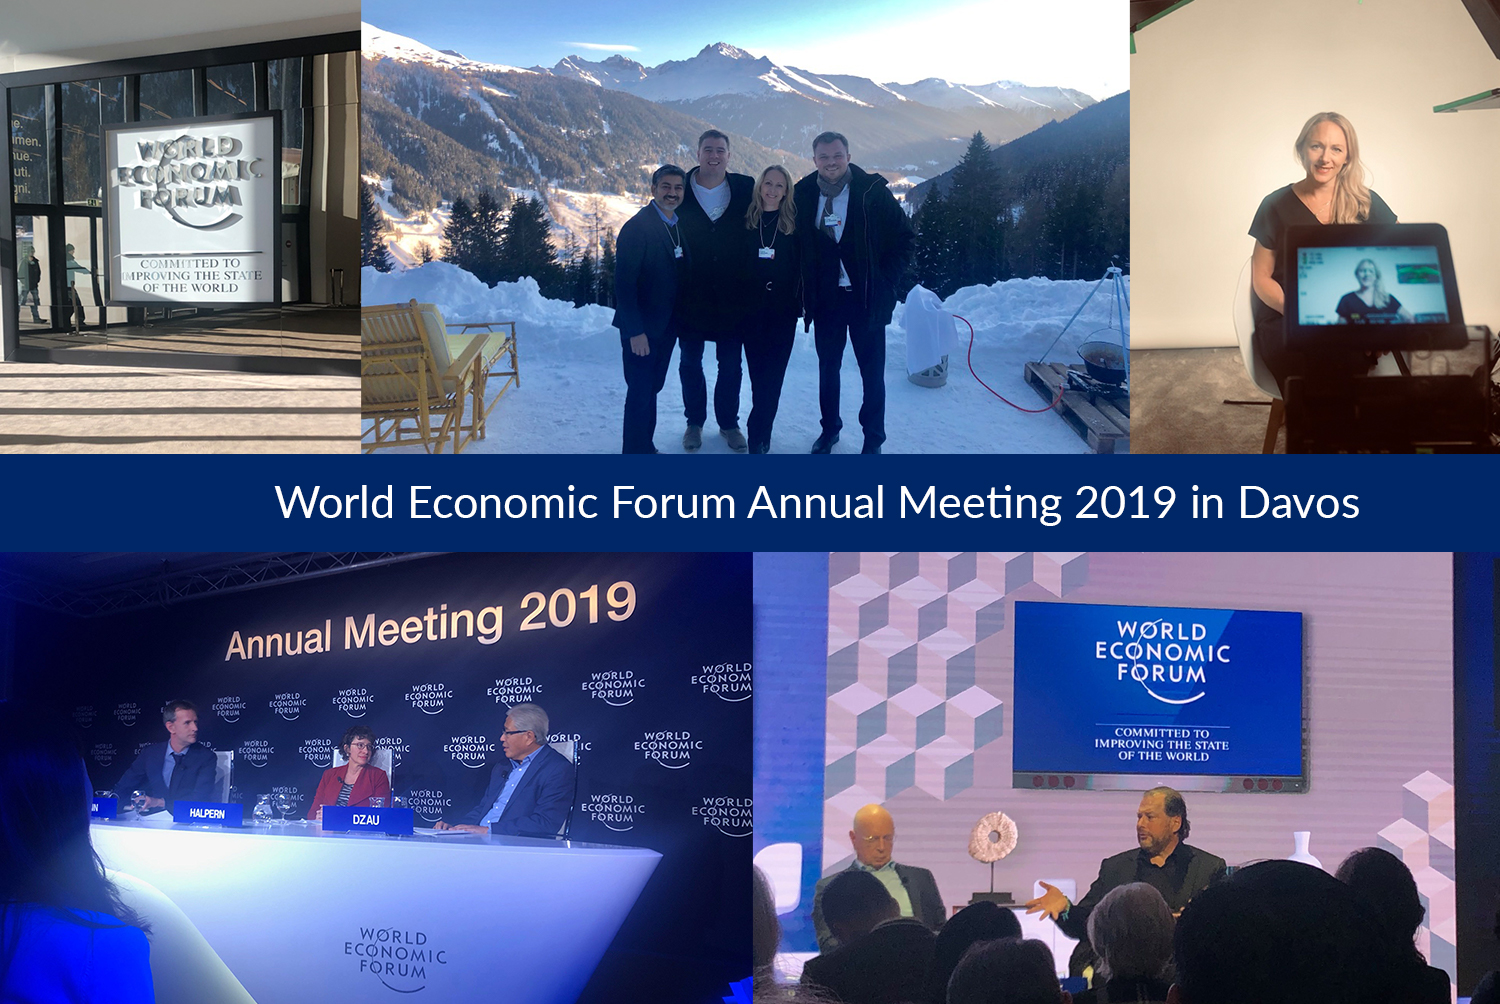 Image collage from the World Economic Forum Annual Meeting 2019 in Davos